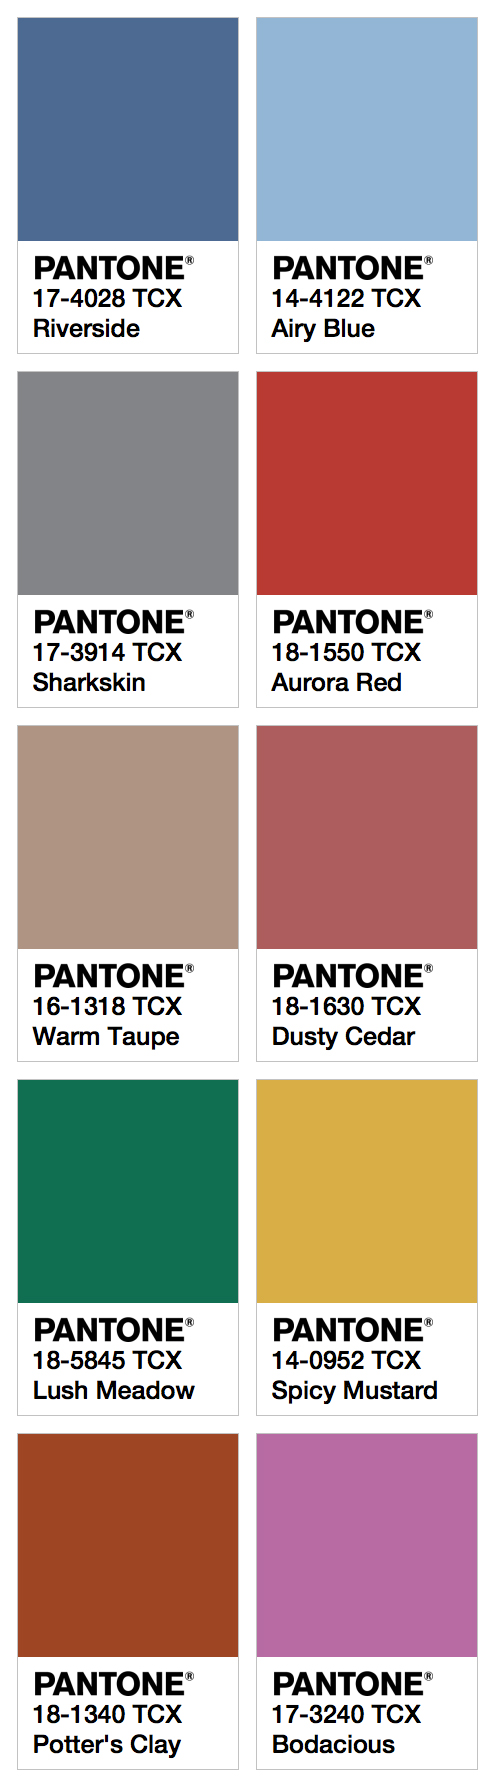 Pantone Color 2016 Pantone Fashion Color Report Fall 2016 Fashion Trendsetter